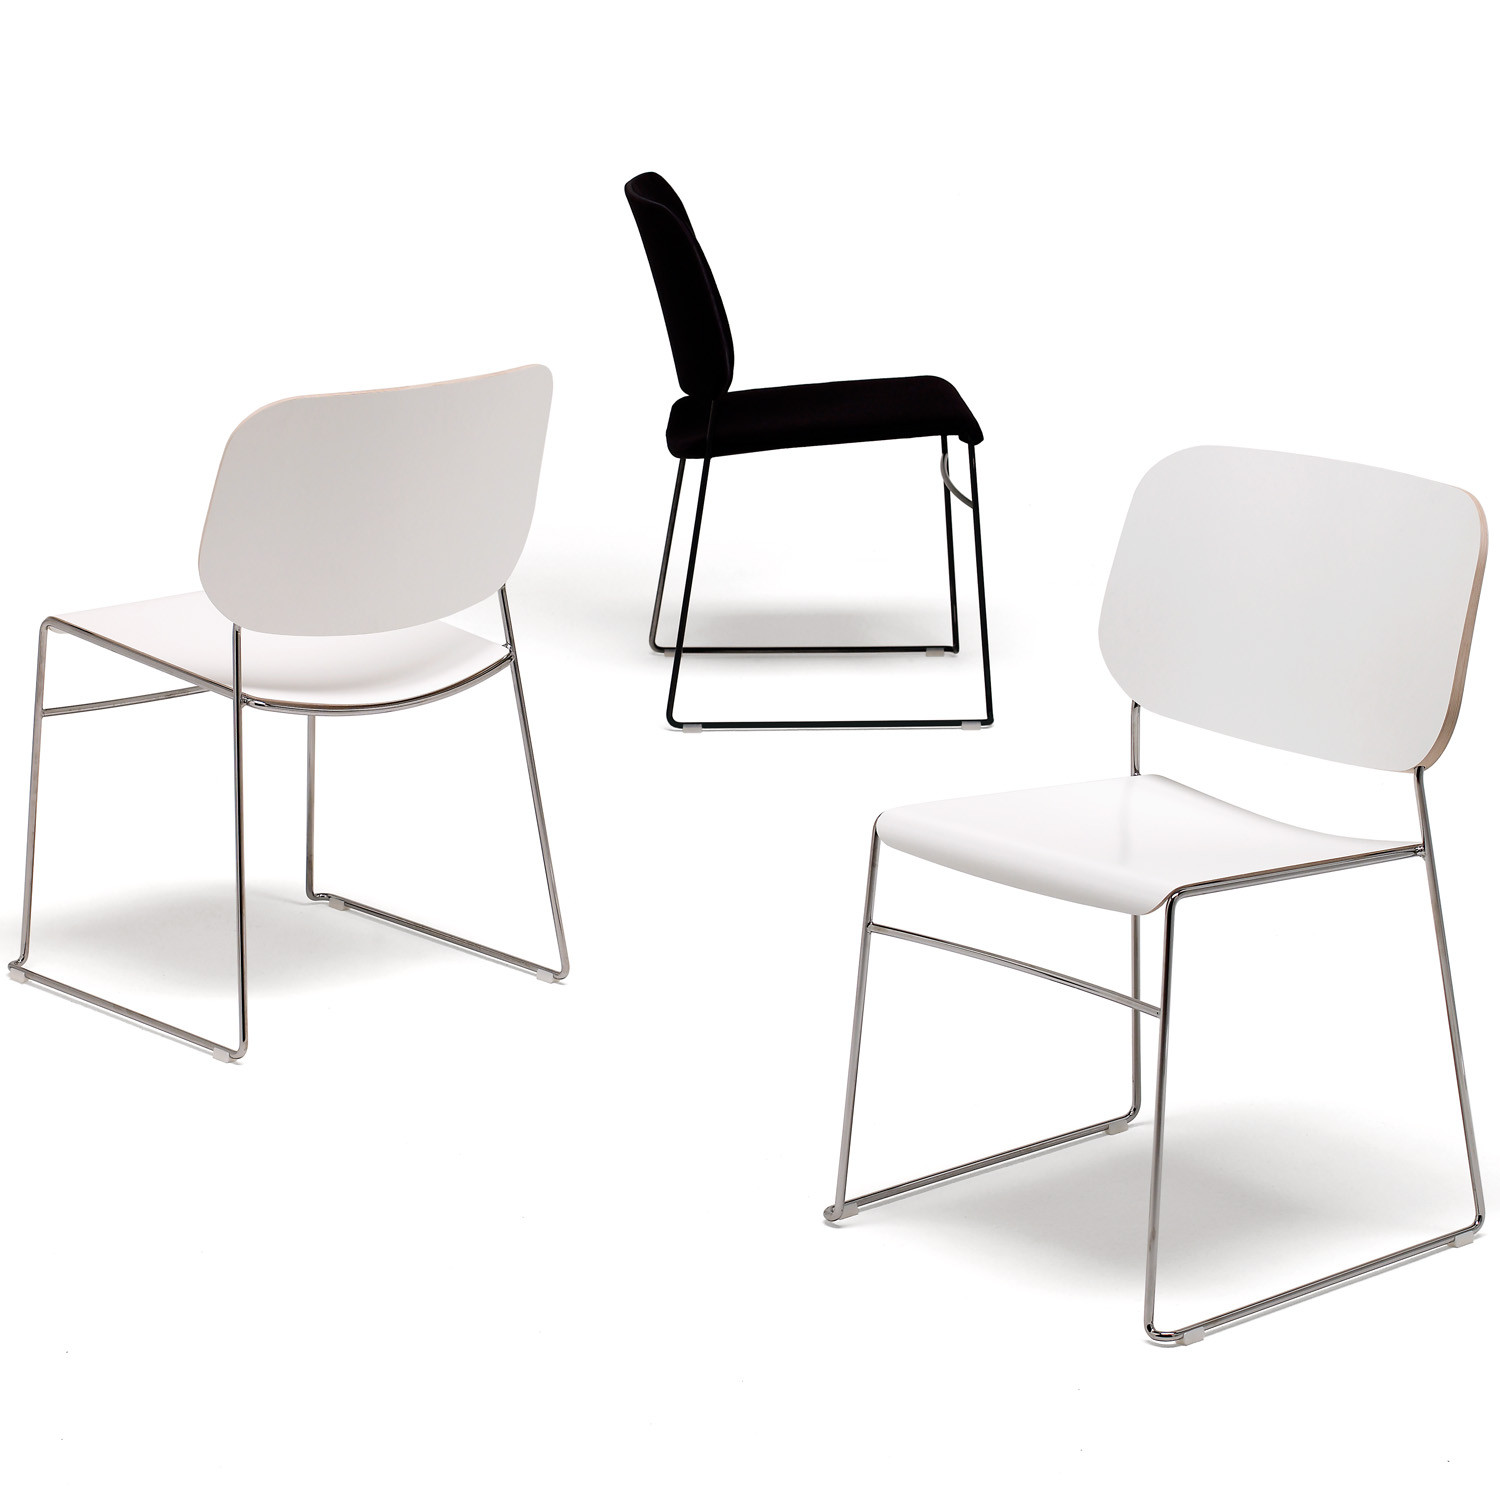 Lite Chair and Armchair